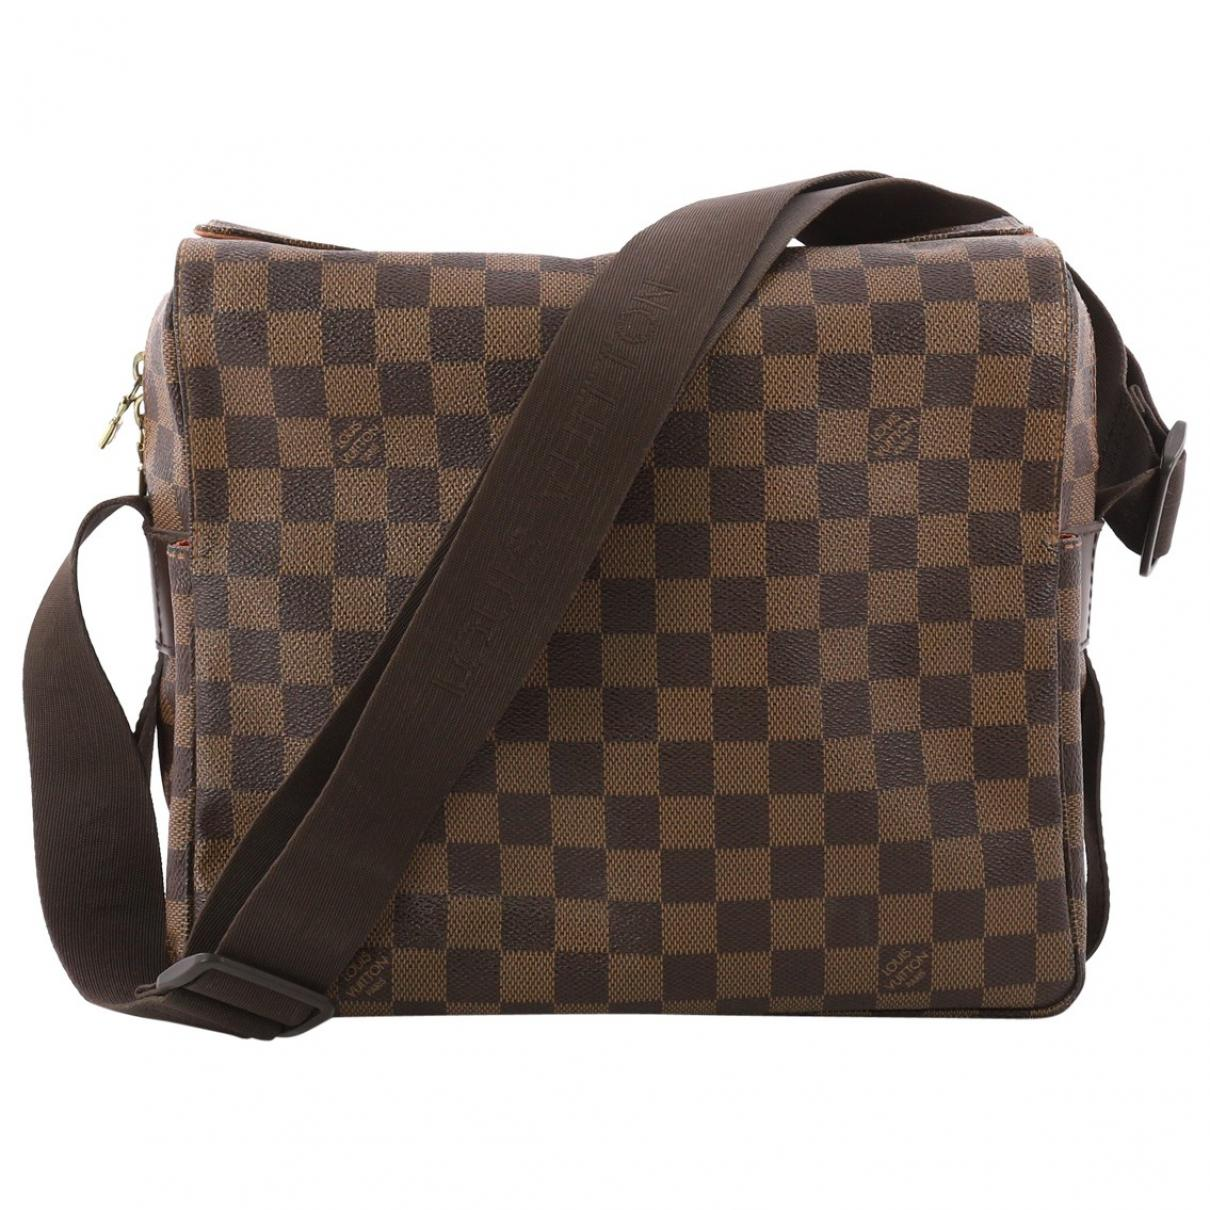 4af10ff1e40c Louis Vuitton Pre-owned Cloth Crossbody Bag in Brown - Lyst